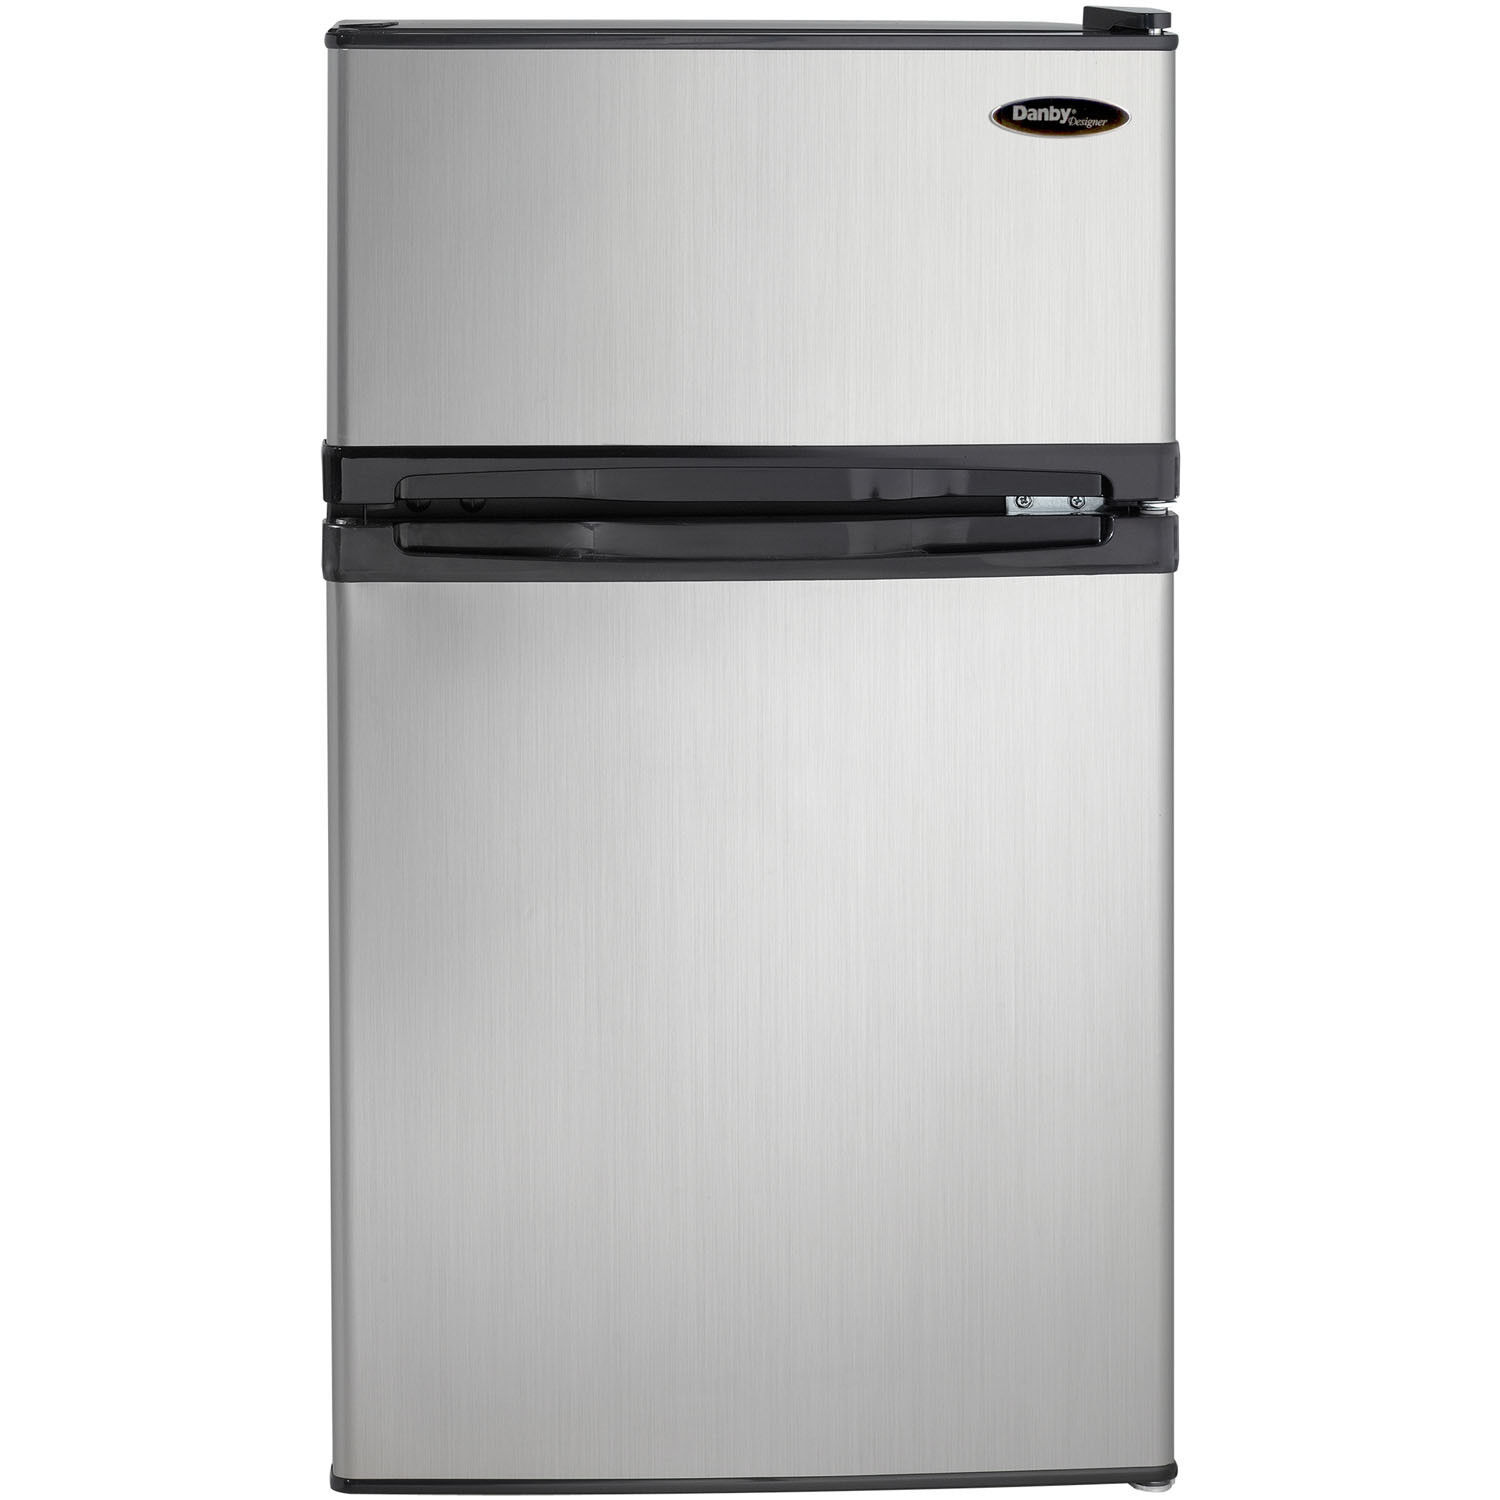 3.1 cu. ft. Compact Refrigerator With Freezer RV Camper Apt.